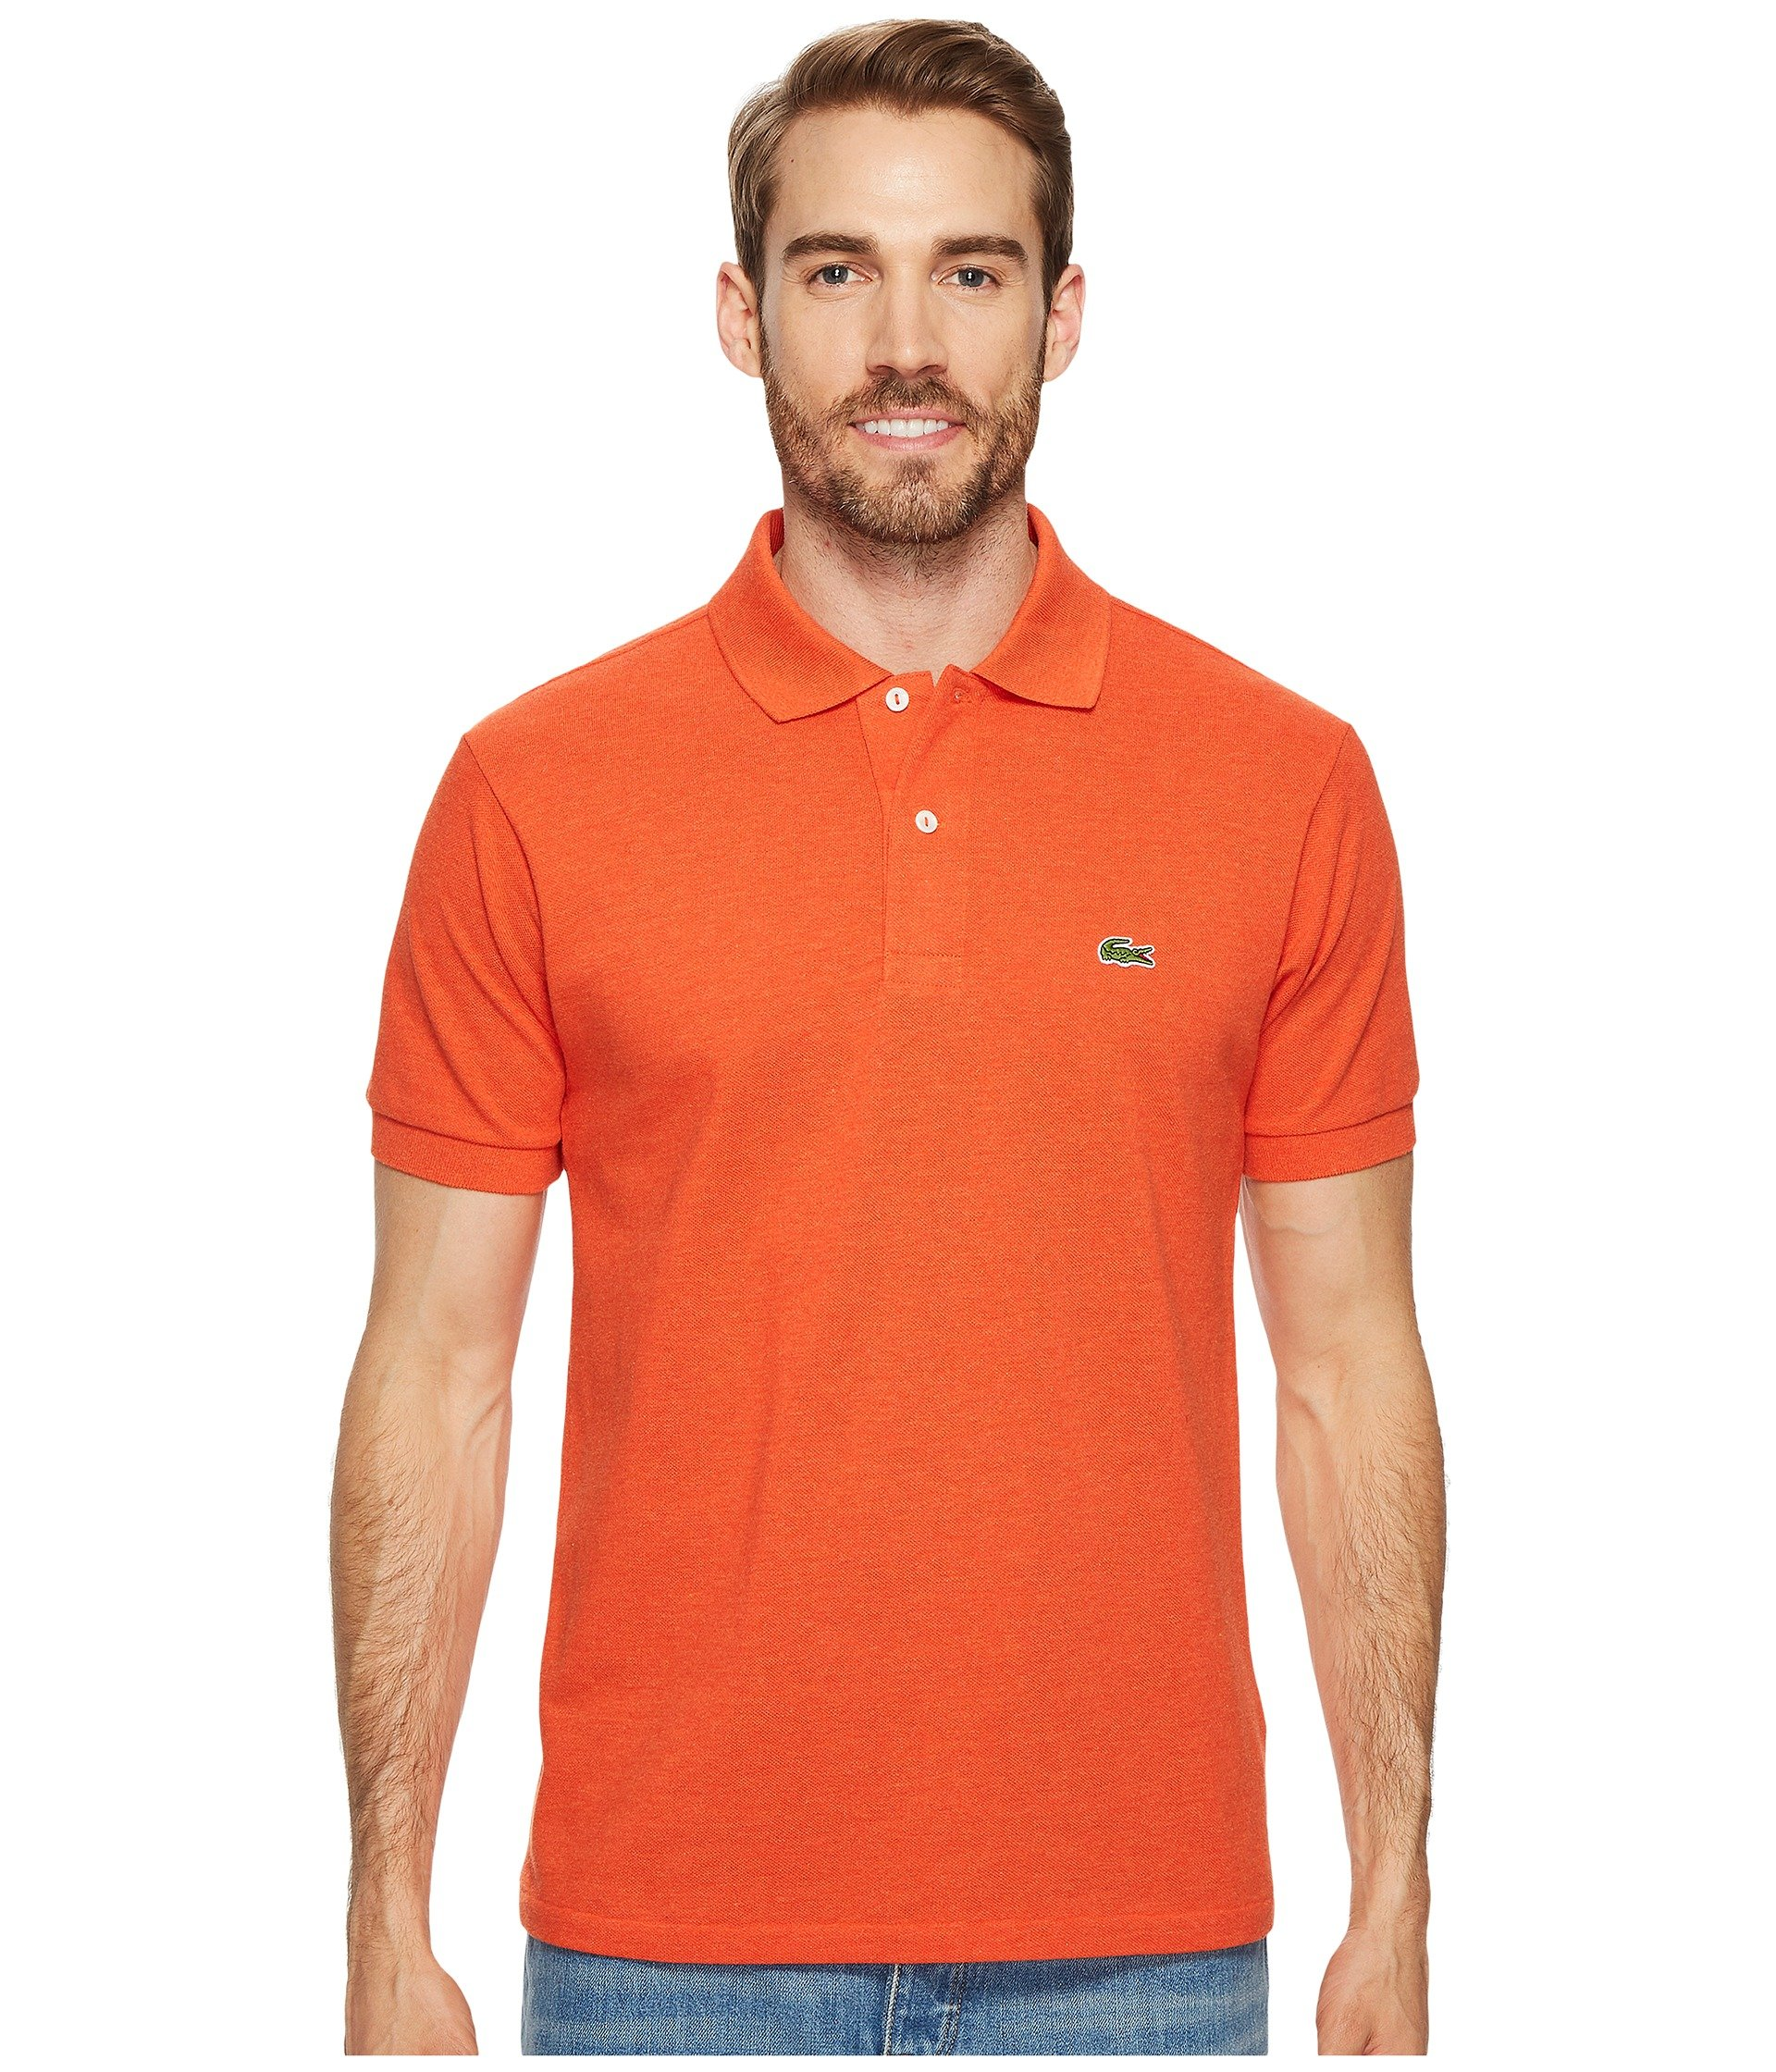 031485c1a Lacoste Short Sleeve Classic Fit Chine Pique Polo Shirt In Cornaline Chine